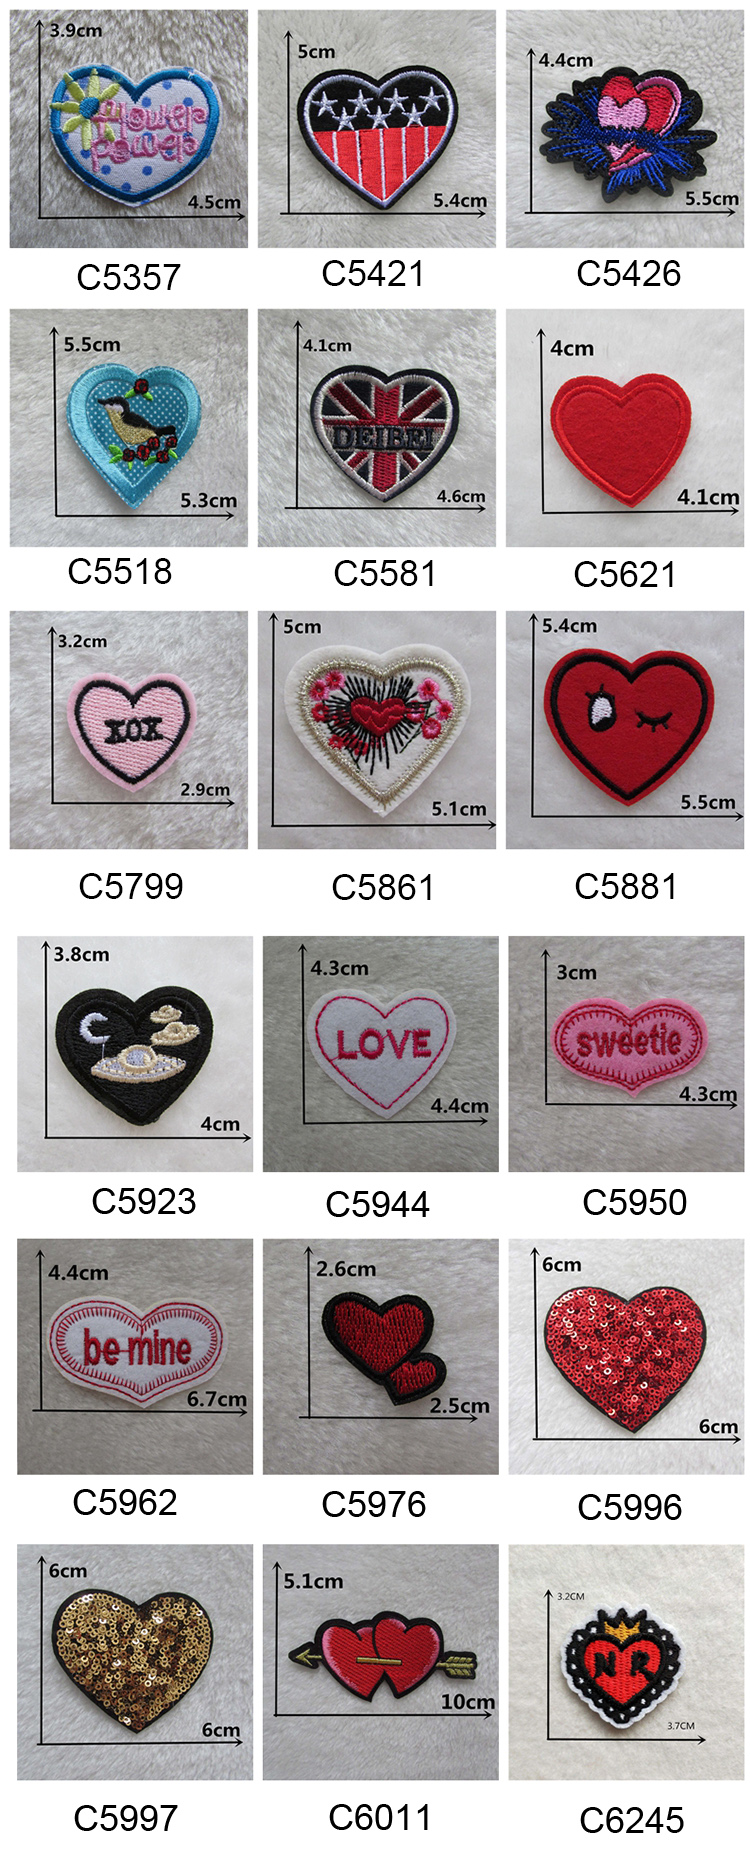 15cm PINK  LOVE HEART SHAPE Embroidered Iron Sew On Cloth Patch Badge  APPLIQUE